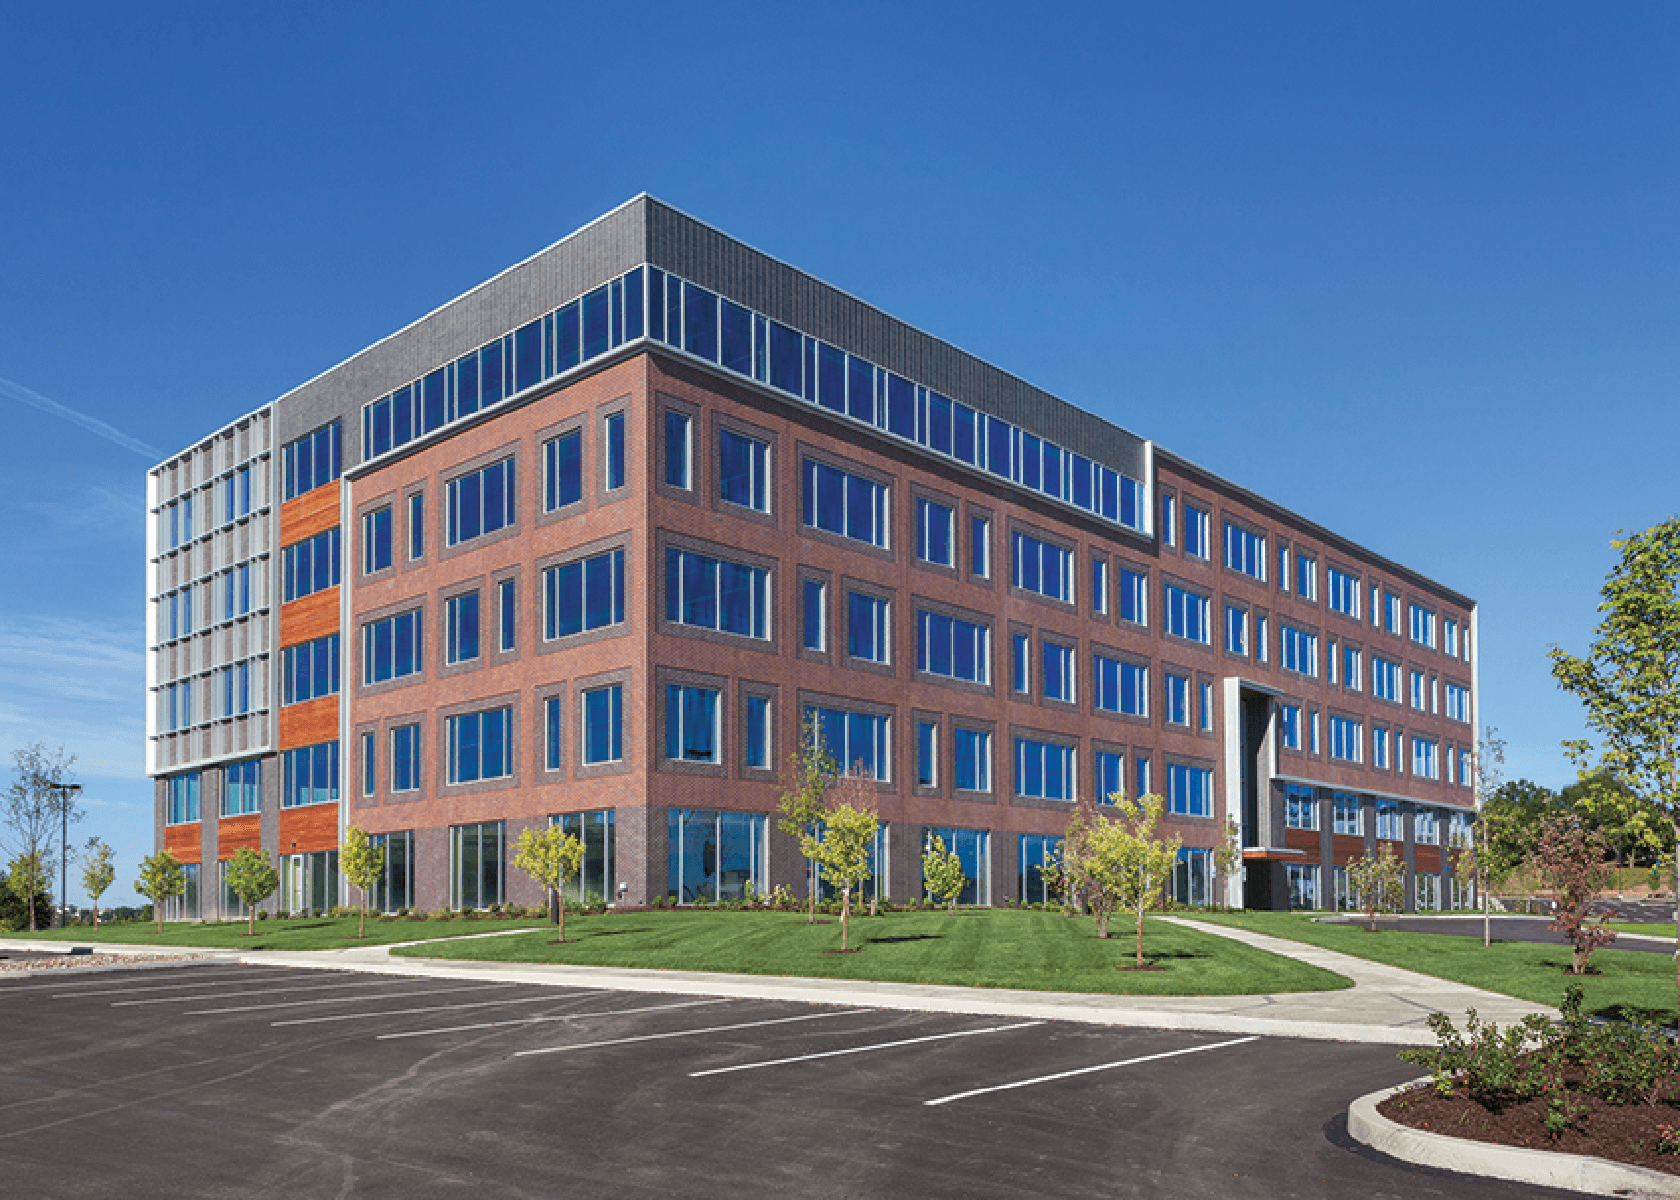 Exterior of Zenith Ridge office building-5 story brick building with wood accents,